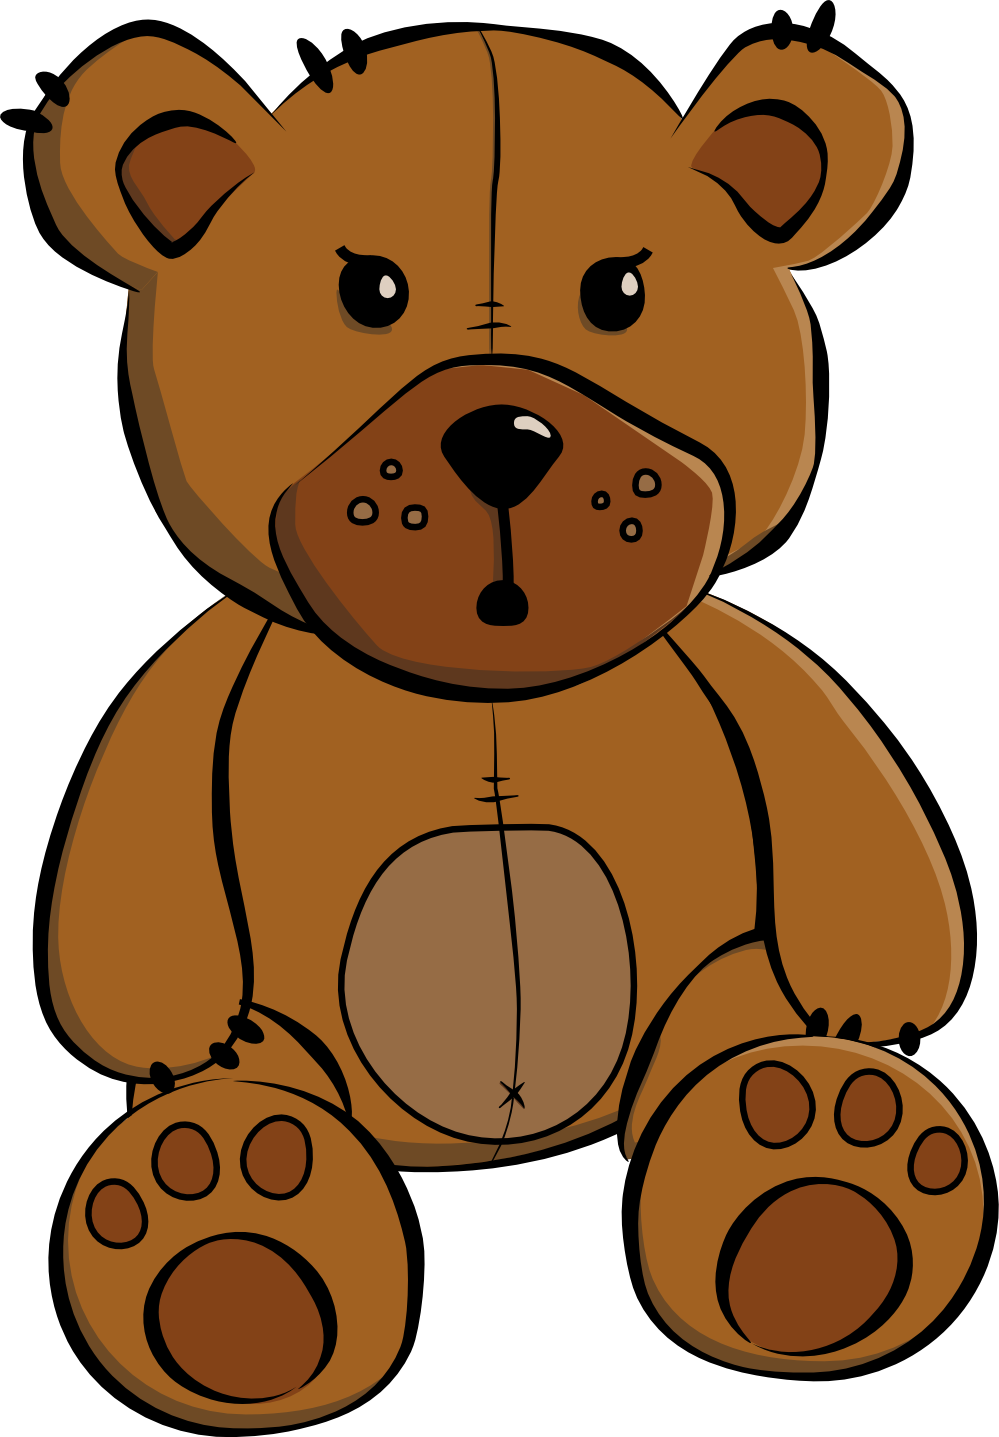 Teddy bear clipart free. Ted clip image stock